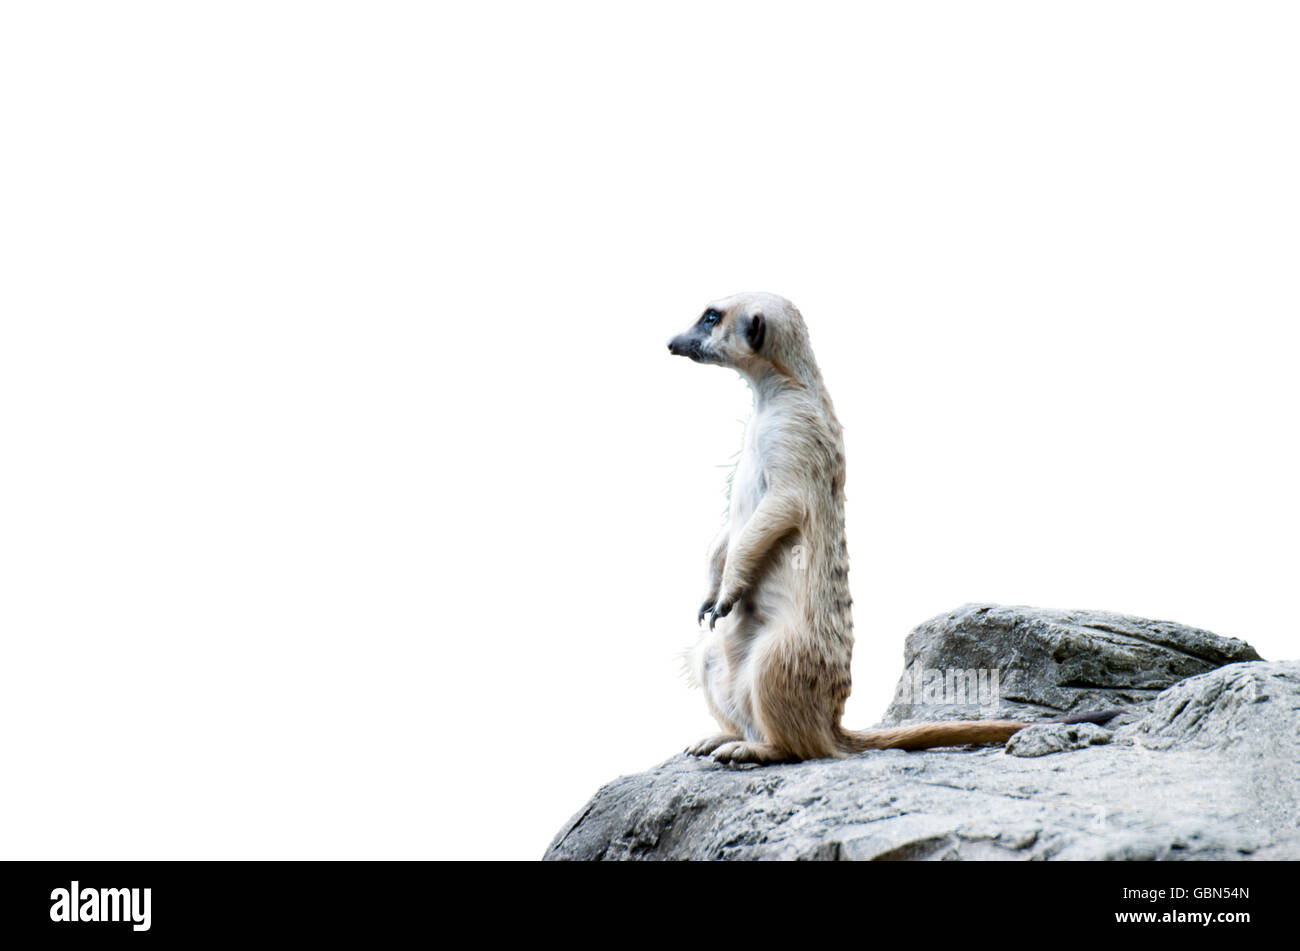 A Meerkat on stone - Stock Image